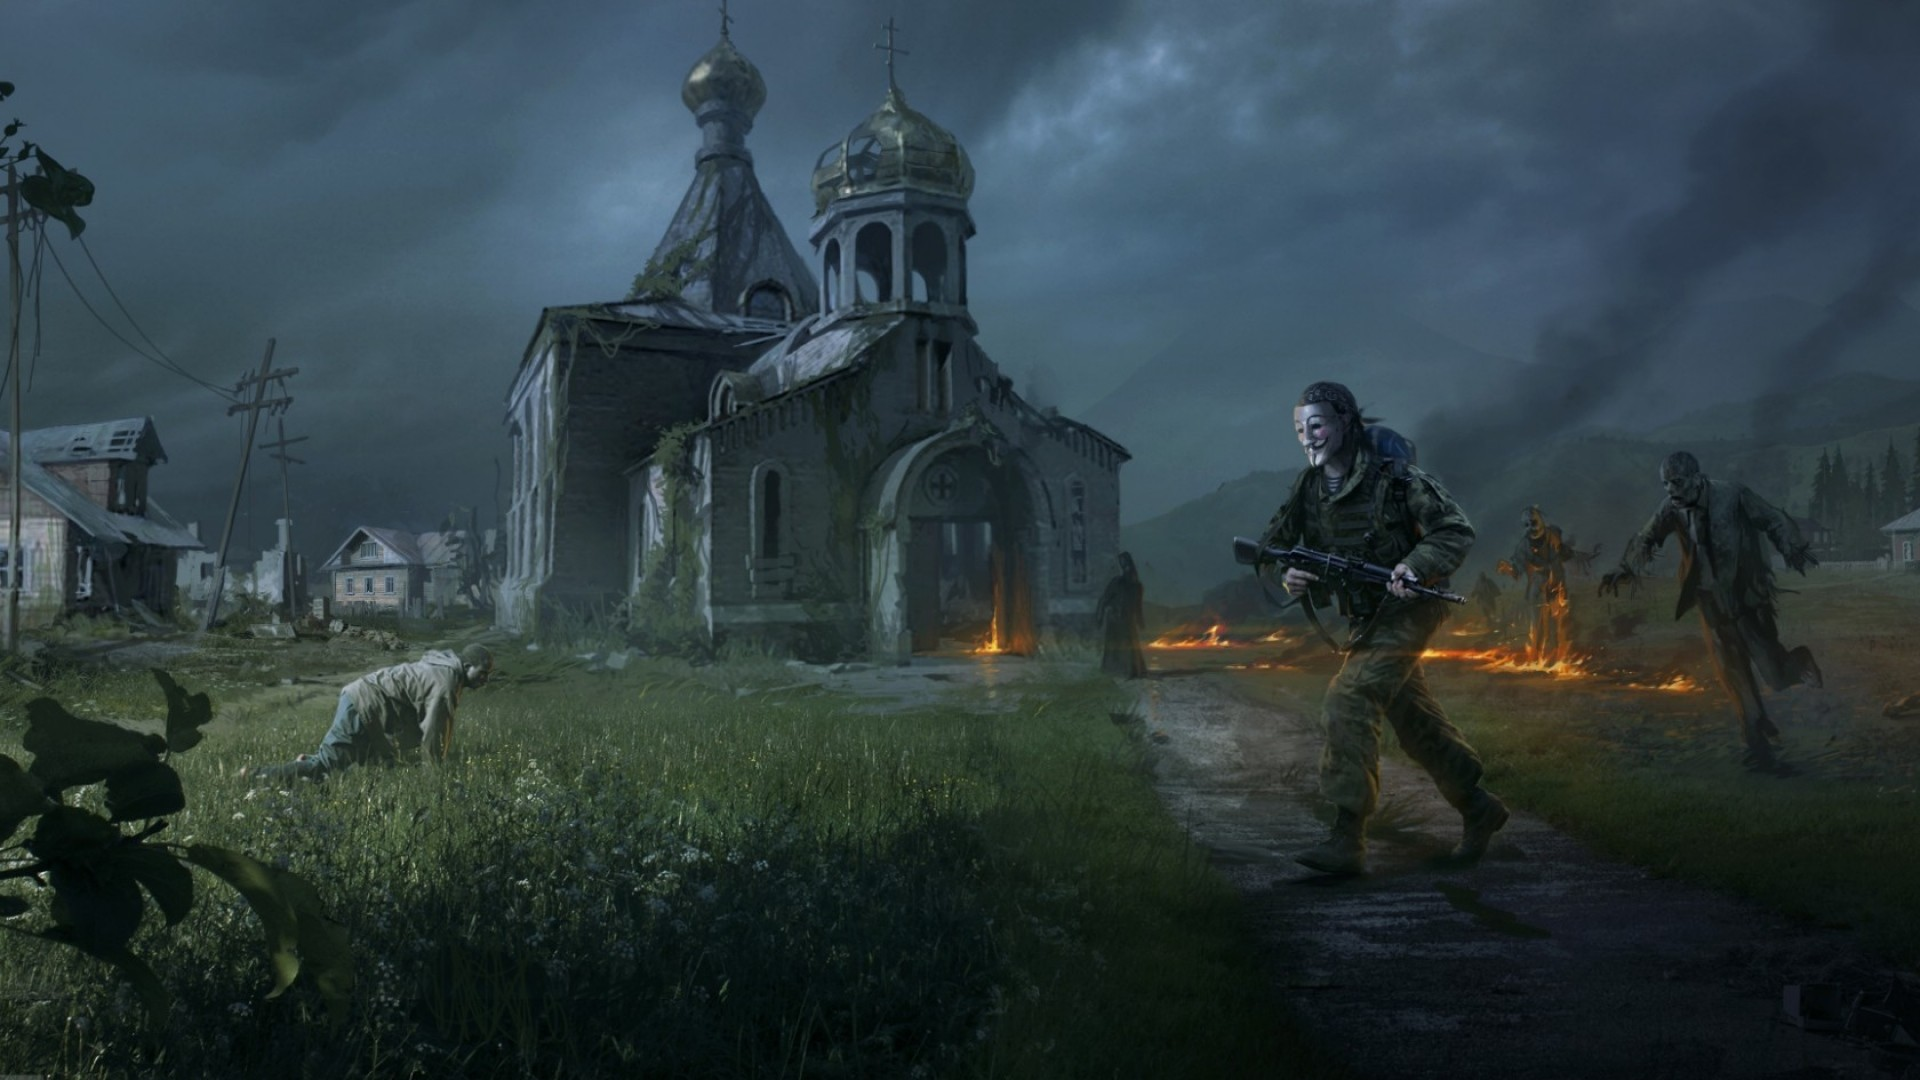 1920x1080 Preview wallpaper dayz standalone, apocalypse, fire, people, zombies,  church, village